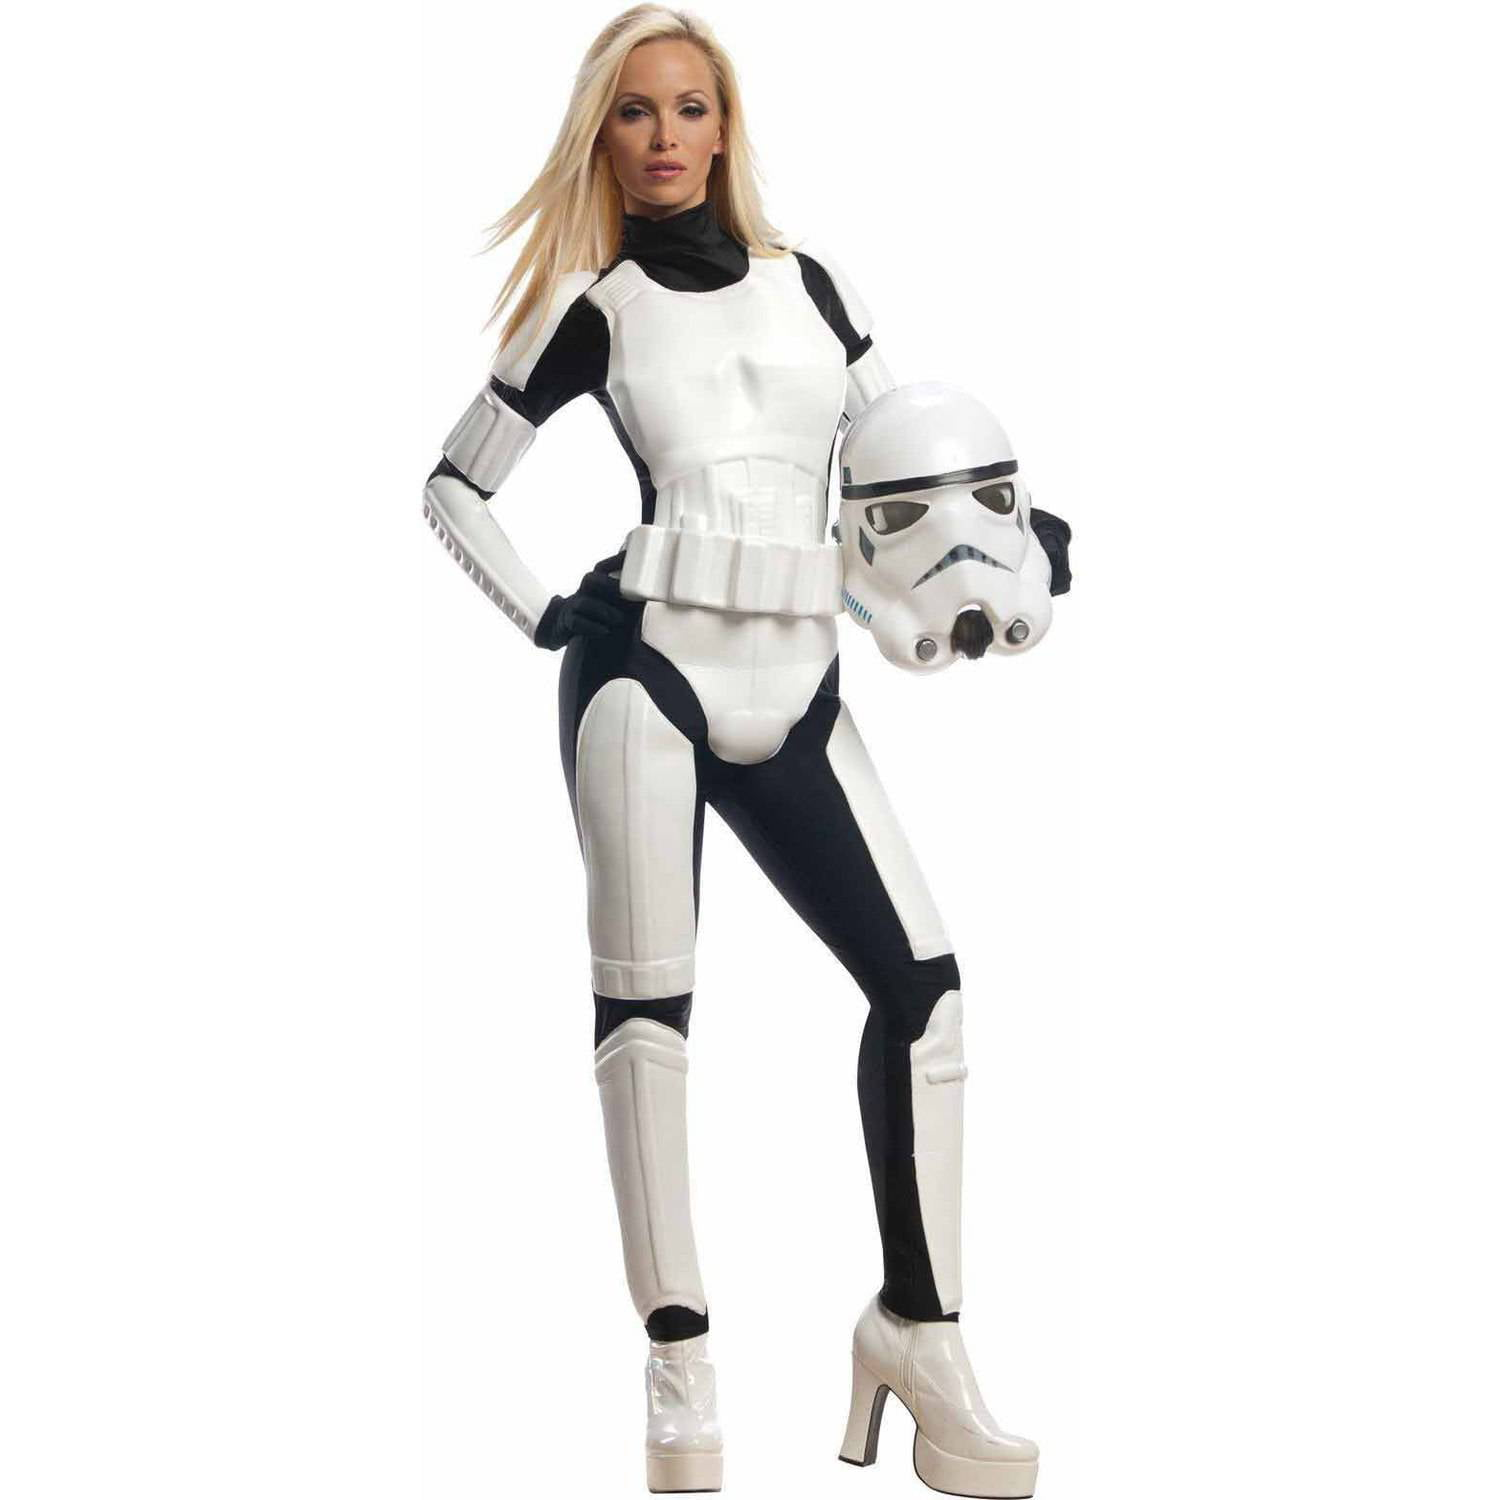 star wars stormtrooper women's adult halloween costume - walmart